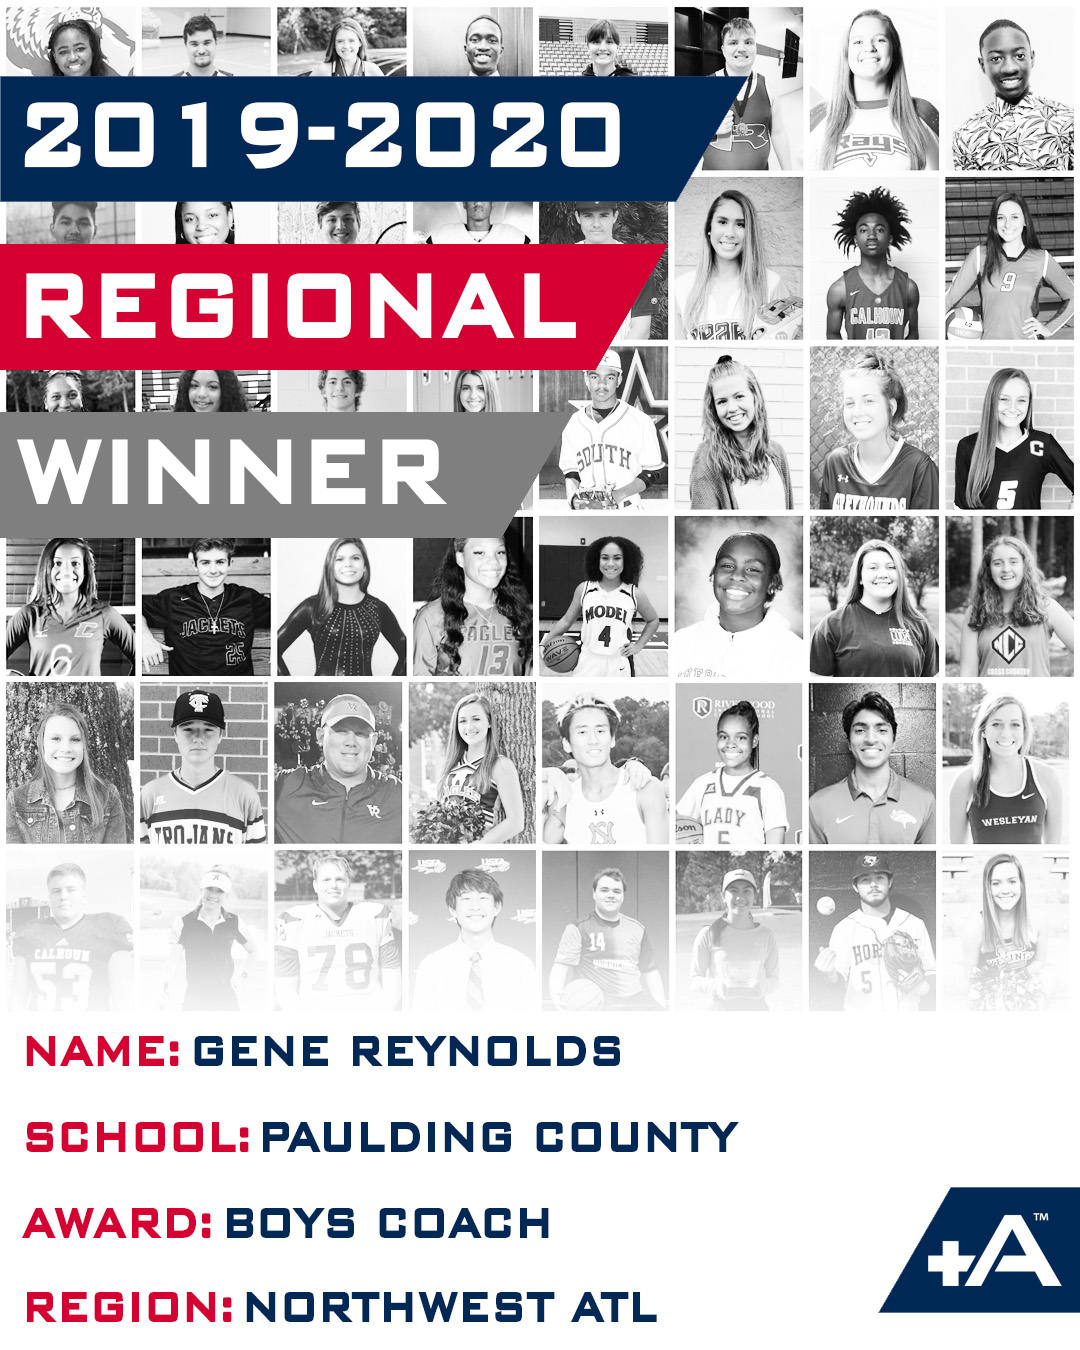 Congrats Coach Reynolds for being selected as Regional Winner for Positive Athlete